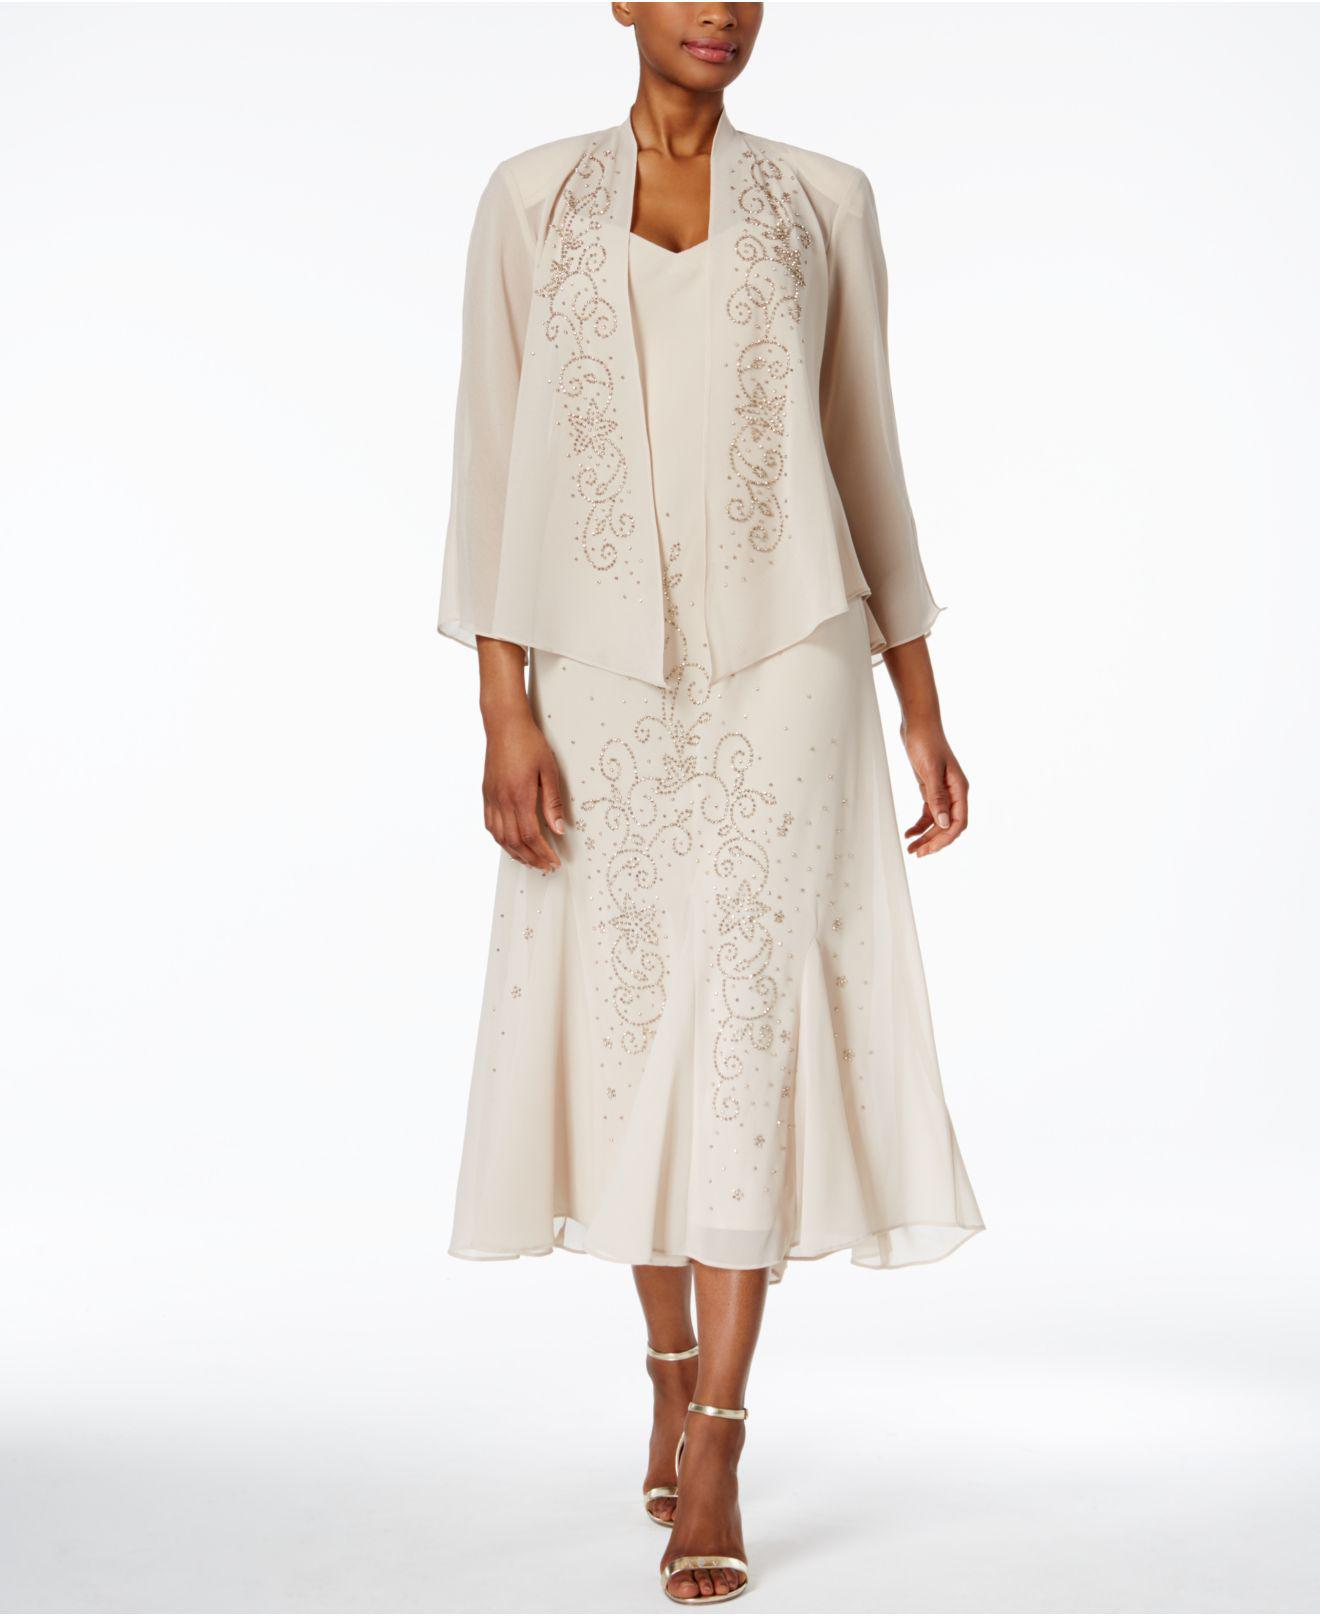 a47af711b2bffe R   M Richards. Women s Natural R m Richards Sleeveless Beaded V-neck Dress  And Jacket